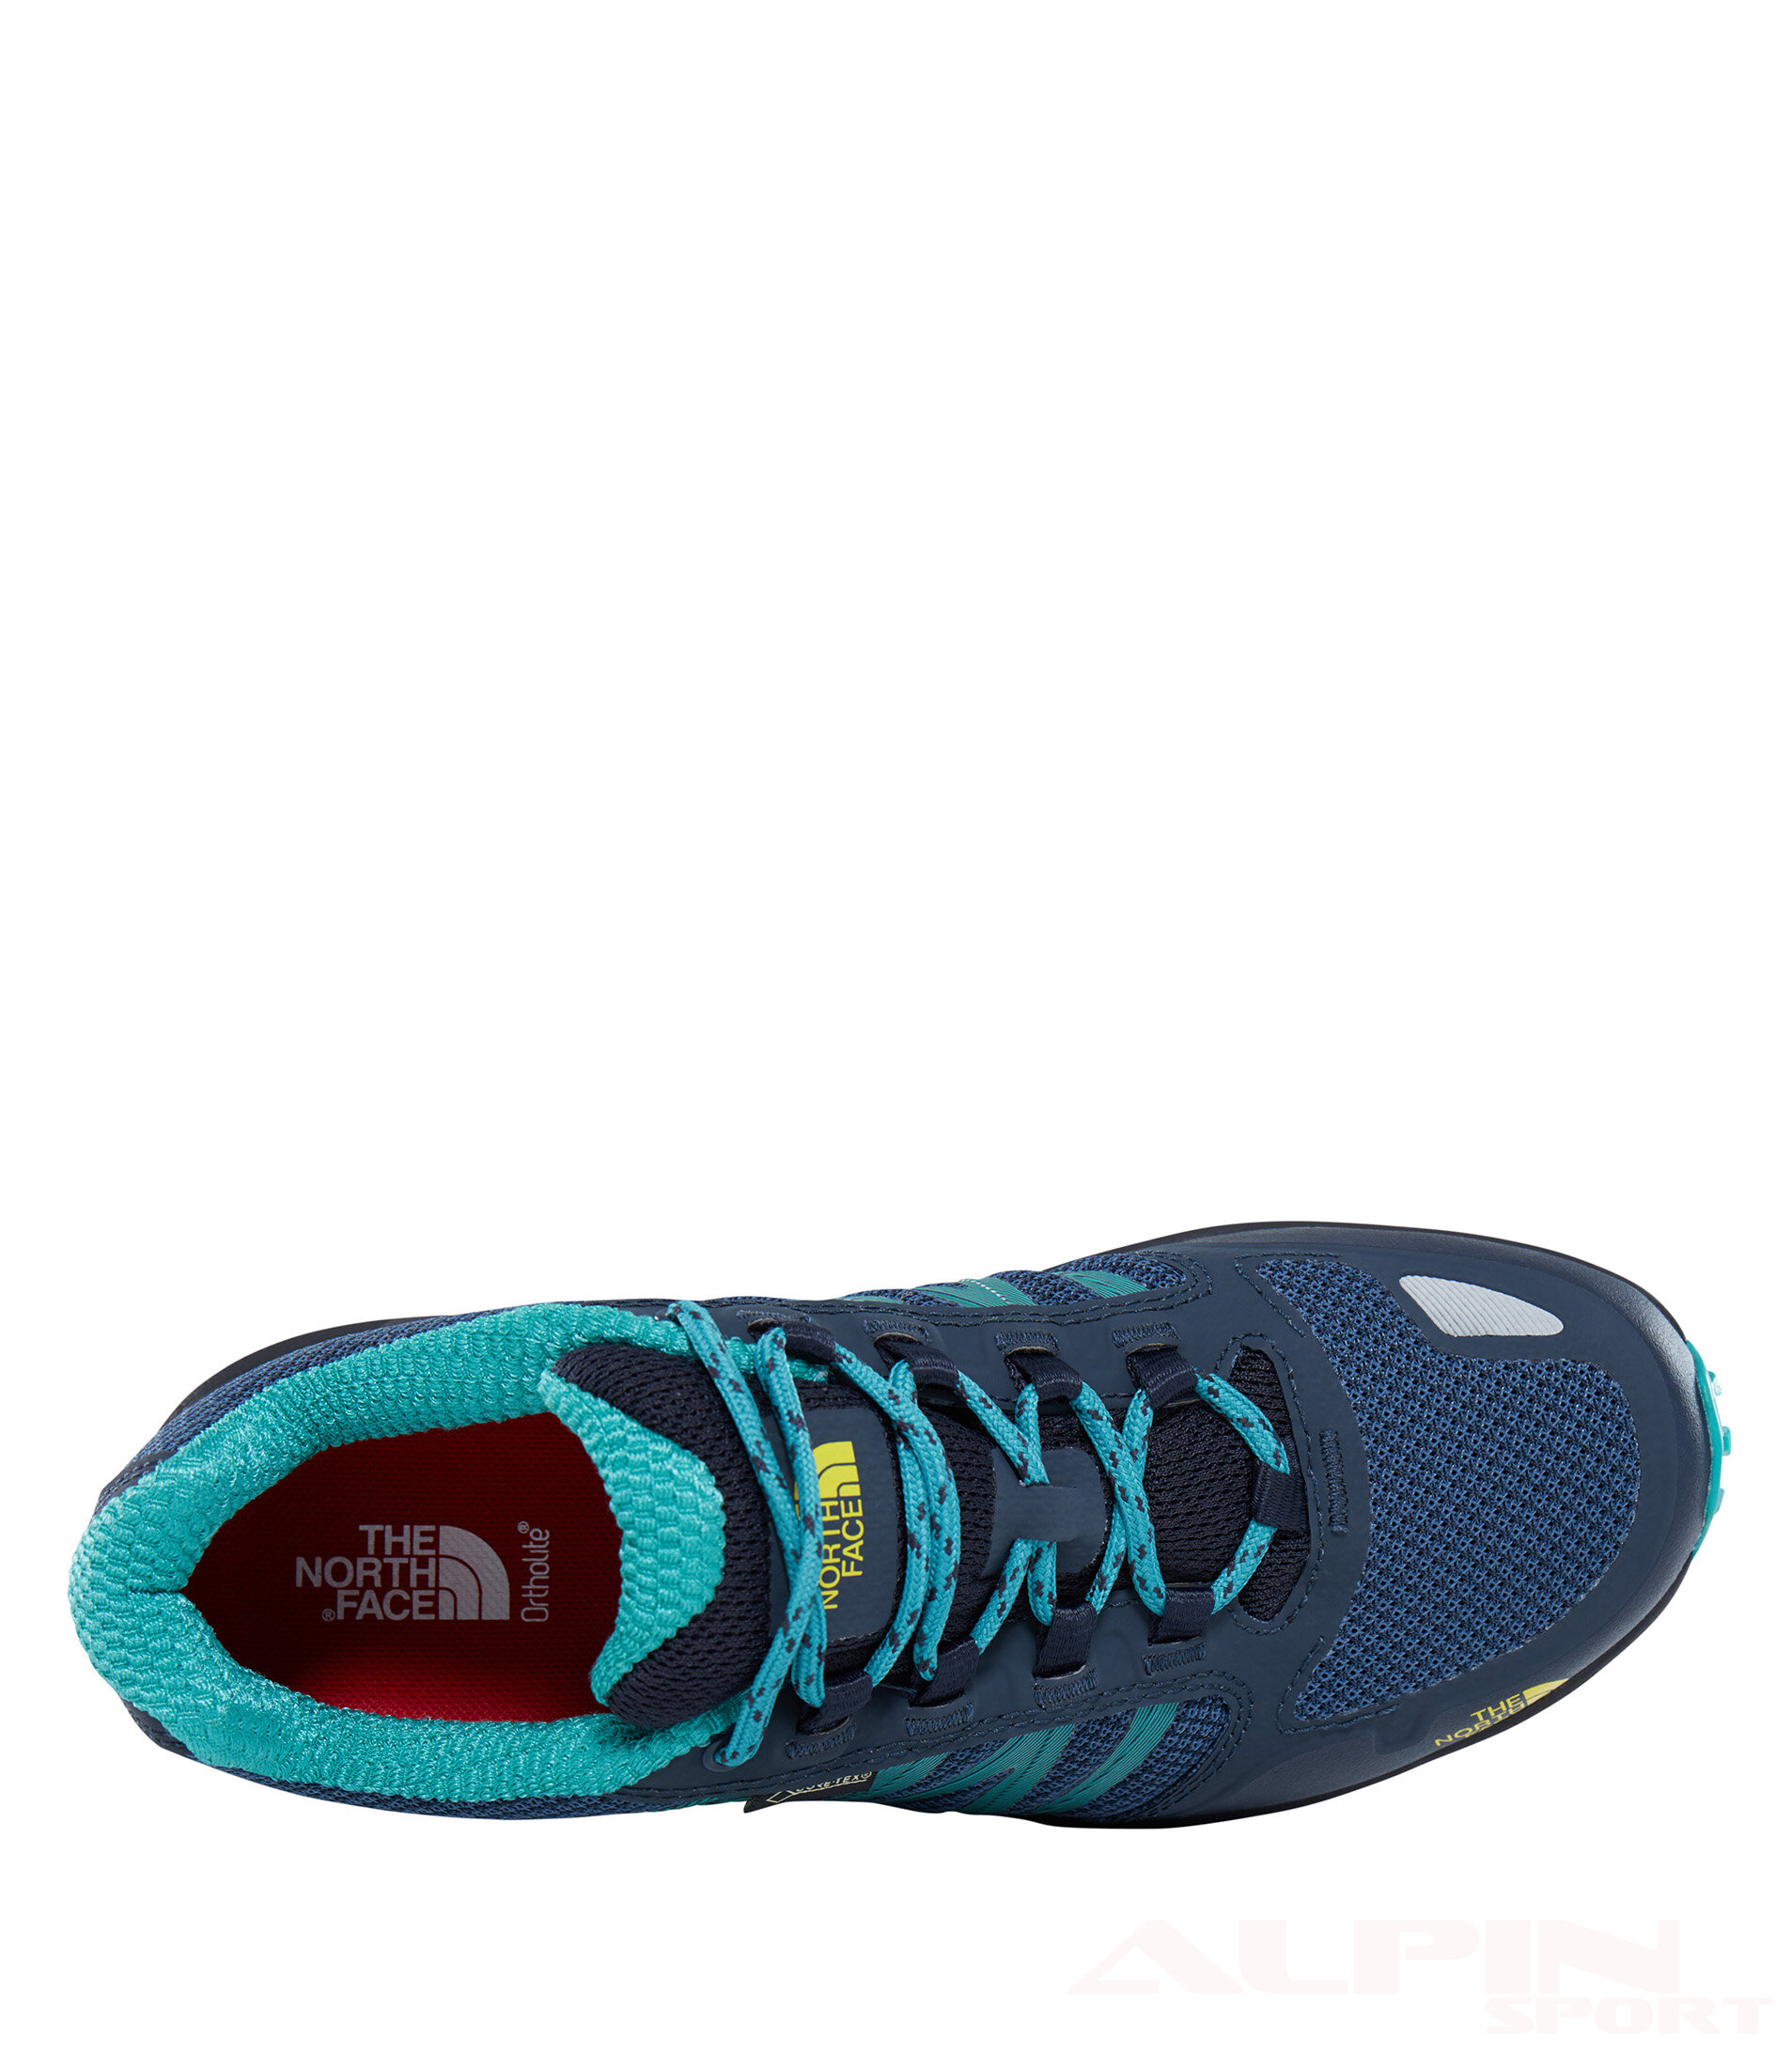 Buty damskie THE NORTH FACE Litewave Fastpack GTX 021_LO_3FX5 4GQ 1